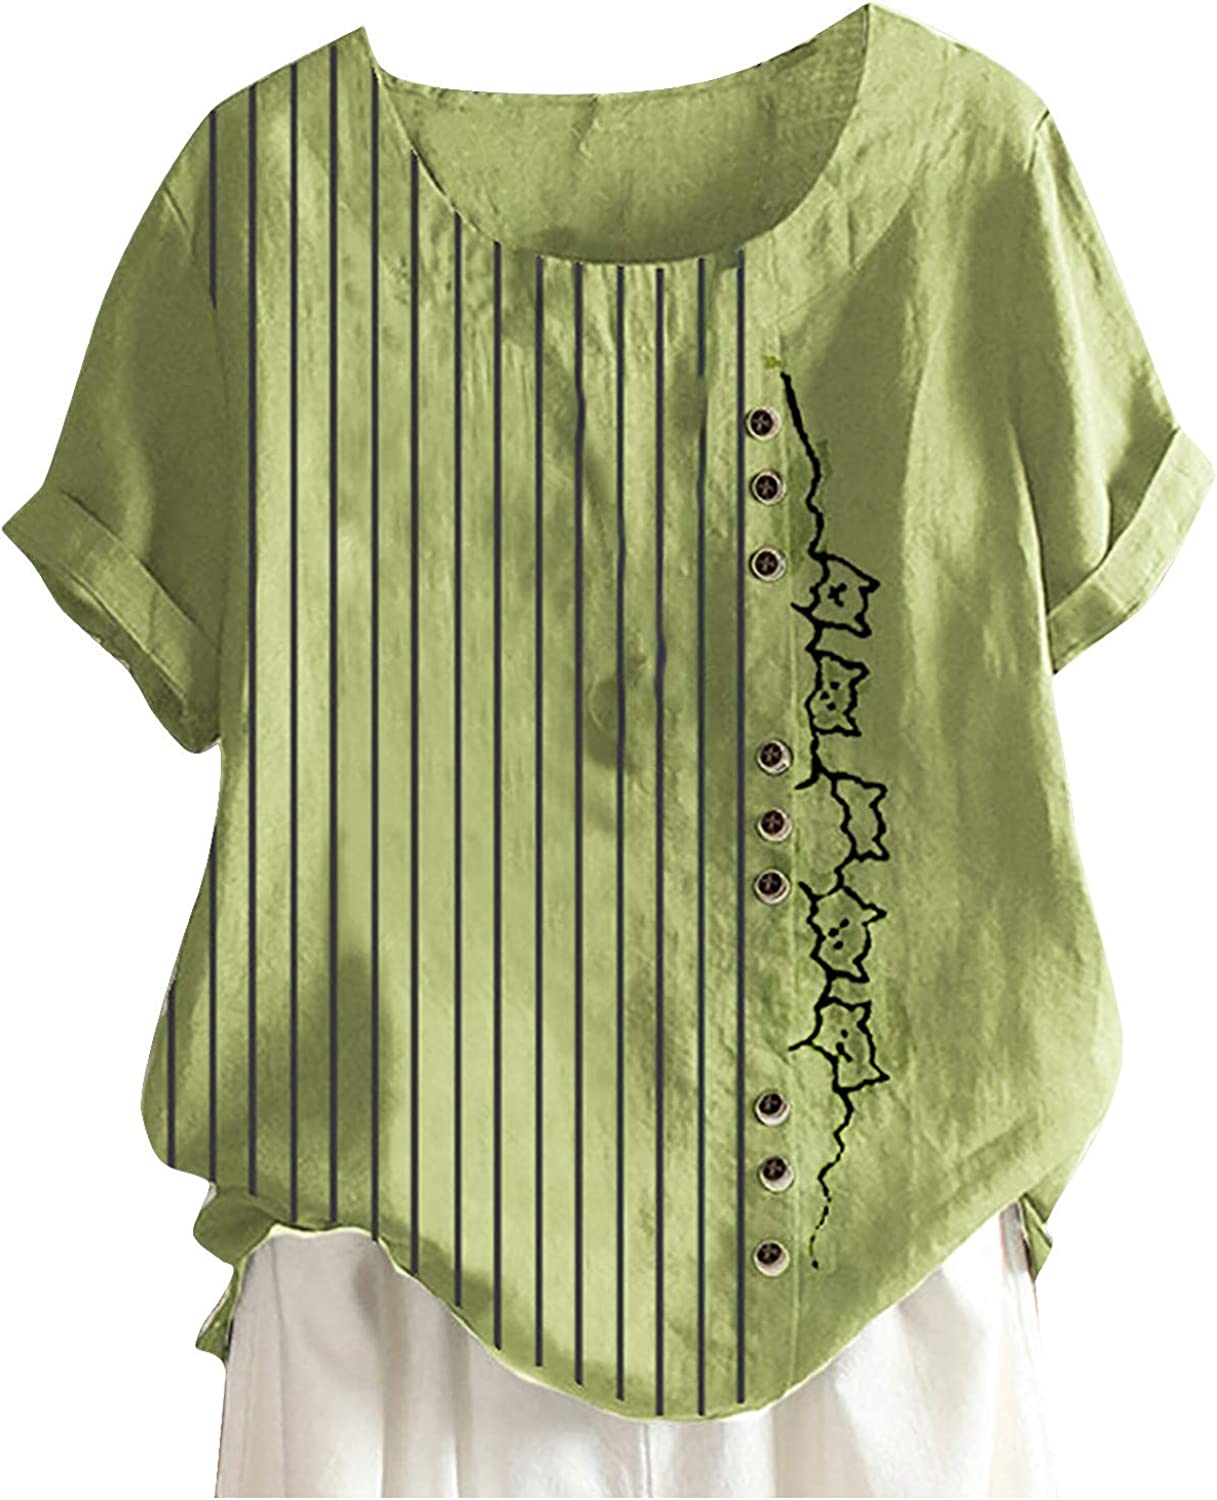 Women's Printed Short Sleeve Top Summer Casual Tees Plus Size T-Shirt Top Blouse